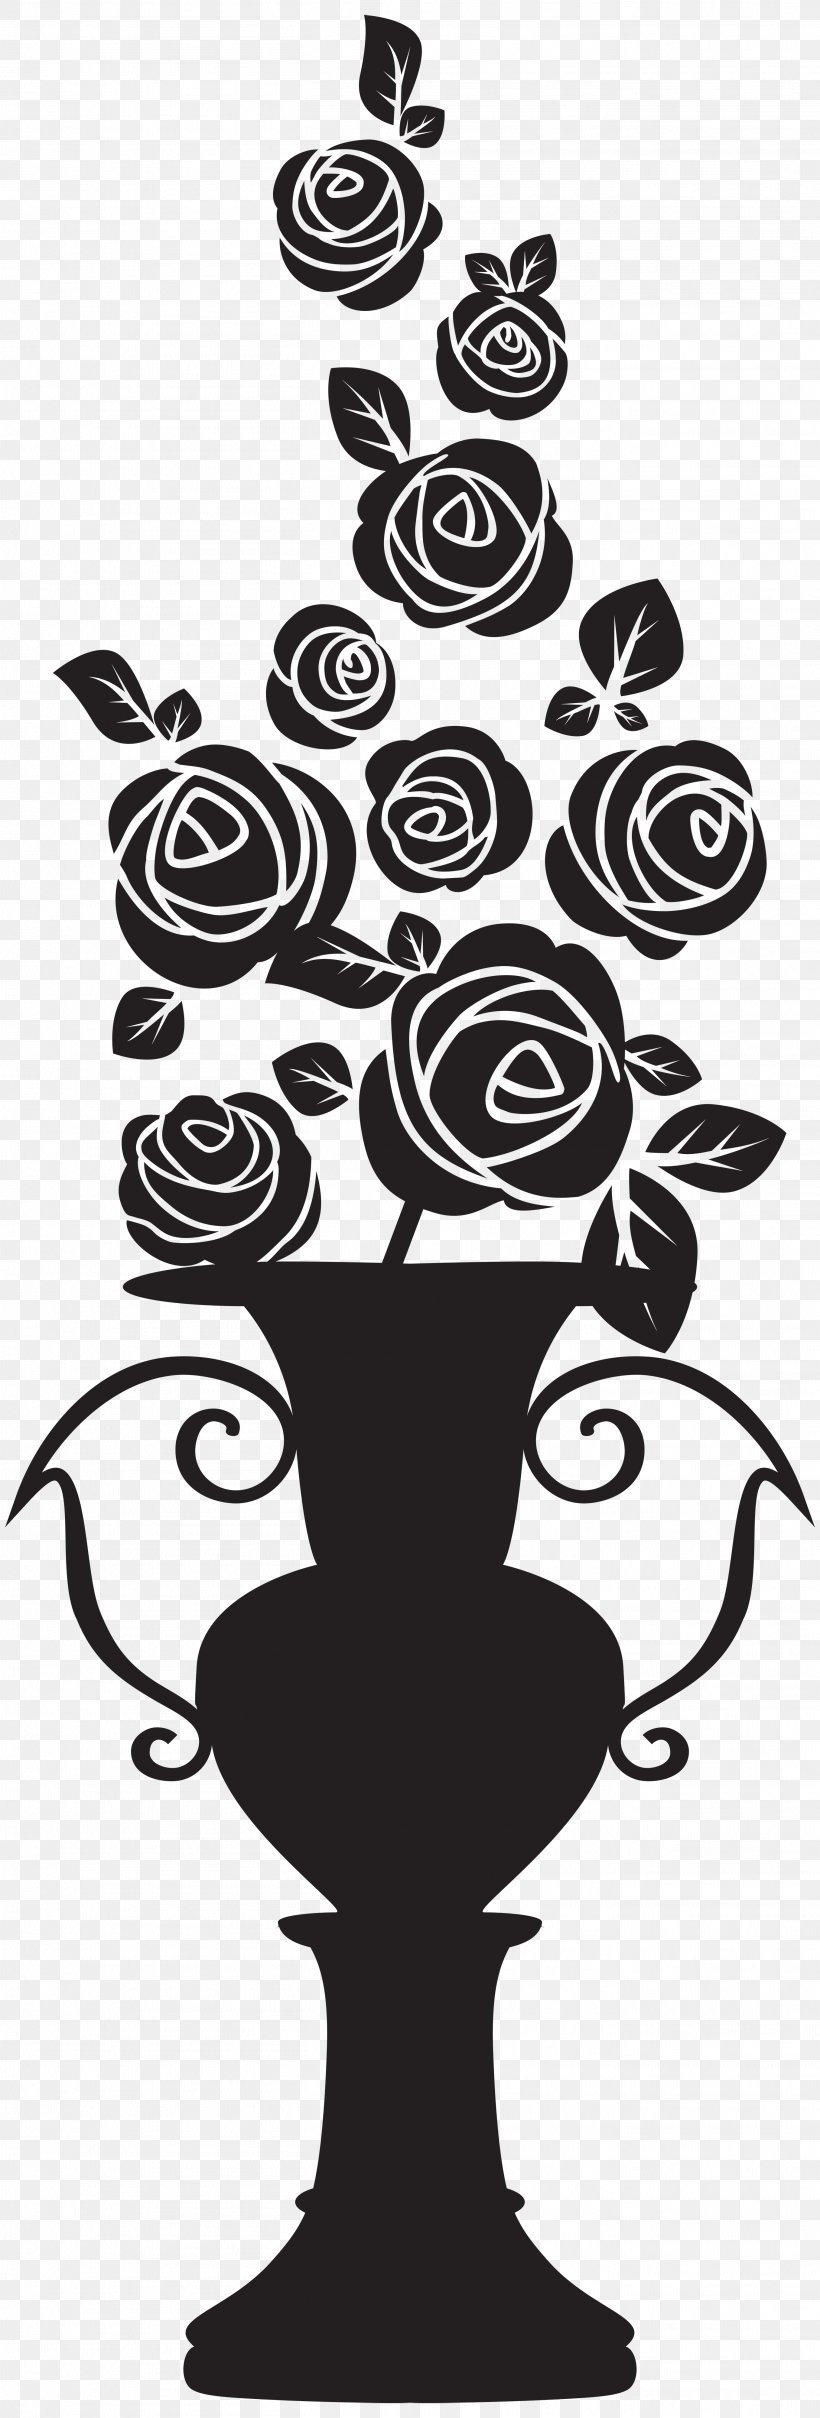 Silhouette Drawing Clip Art, PNG, 2712x8000px, Silhouette, Art, Black And White, Drawing, Flower Download Free